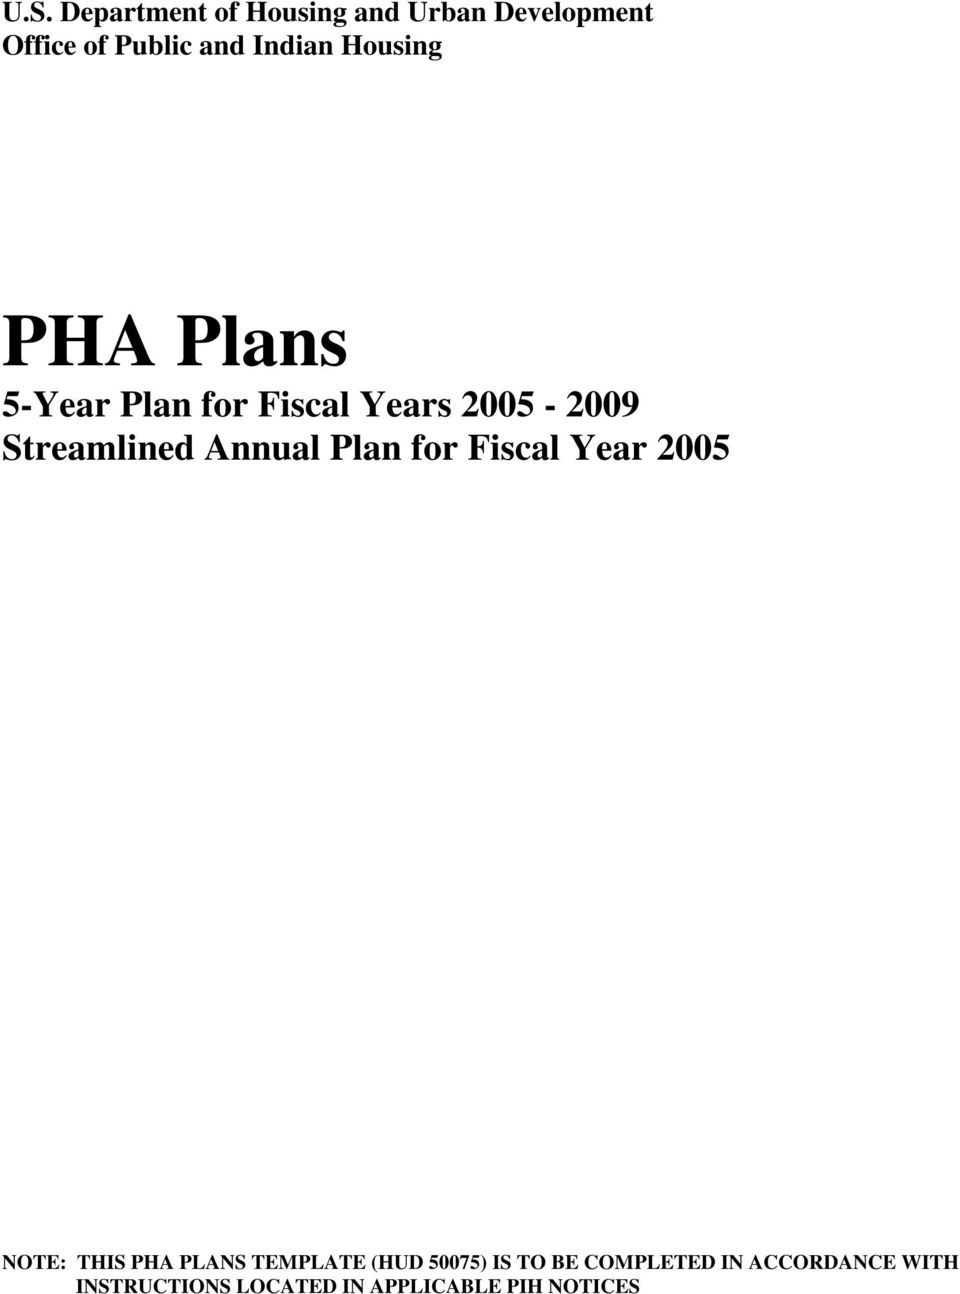 Plan for Fiscal Year 2005 NOTE: THIS PHA PLANS TEMPLATE (HUD 50075) IS TO BE